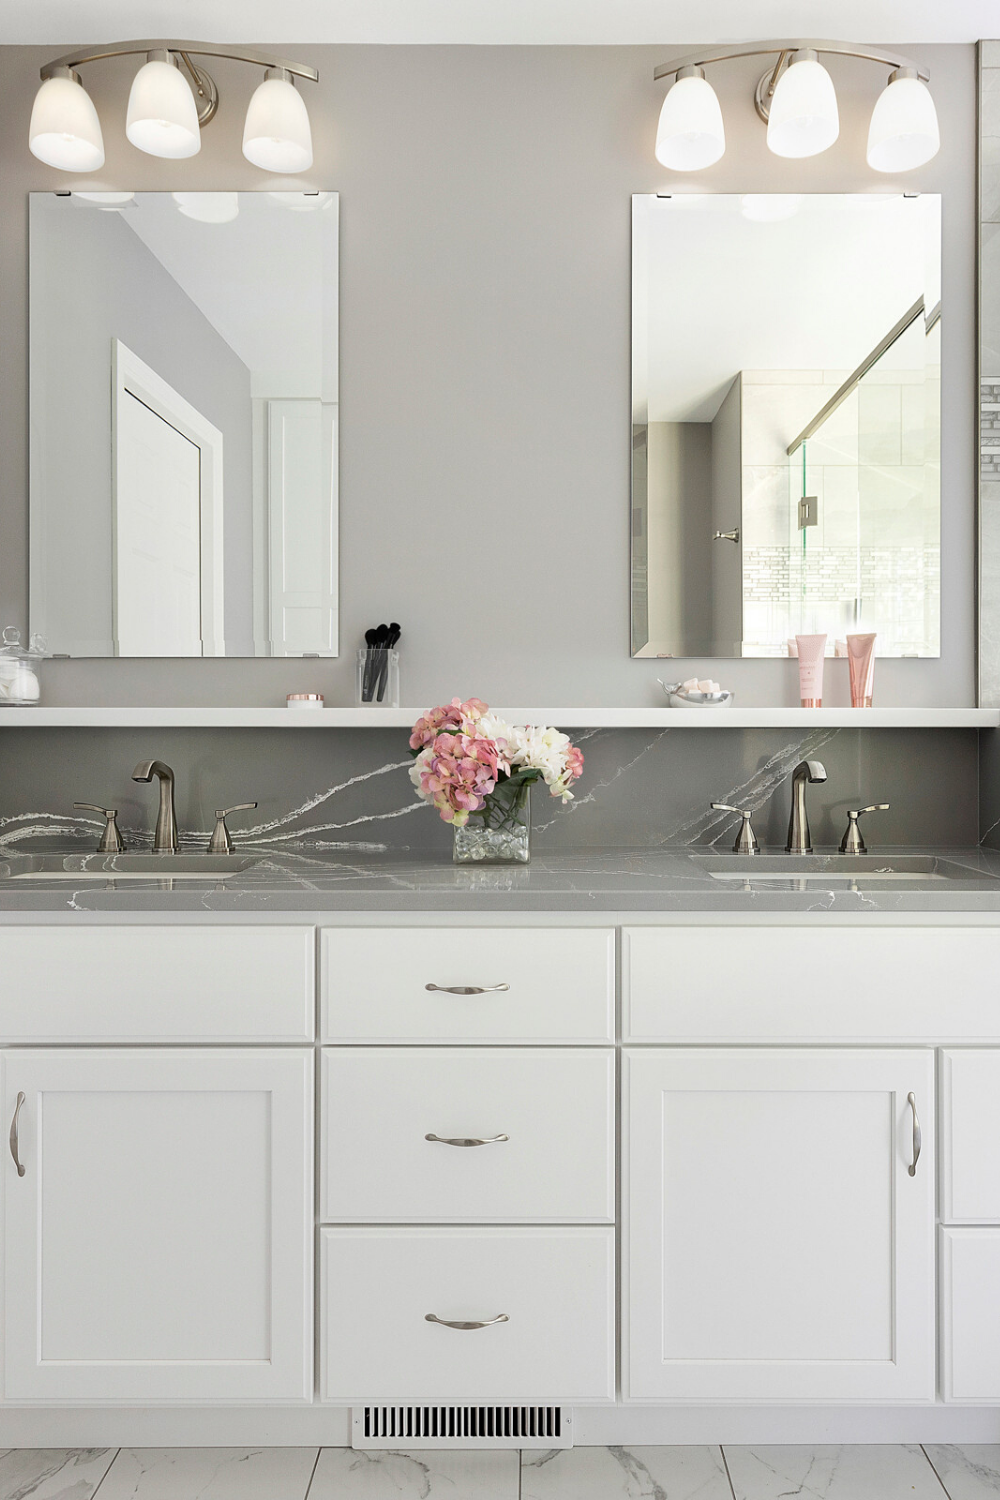 Gray Quartz Bathroom Vanity Ideas Skymarble Vanitytop Grayvanitytop Quartz Bathroom Countertops Bathroom Countertops Quartz Bathroom